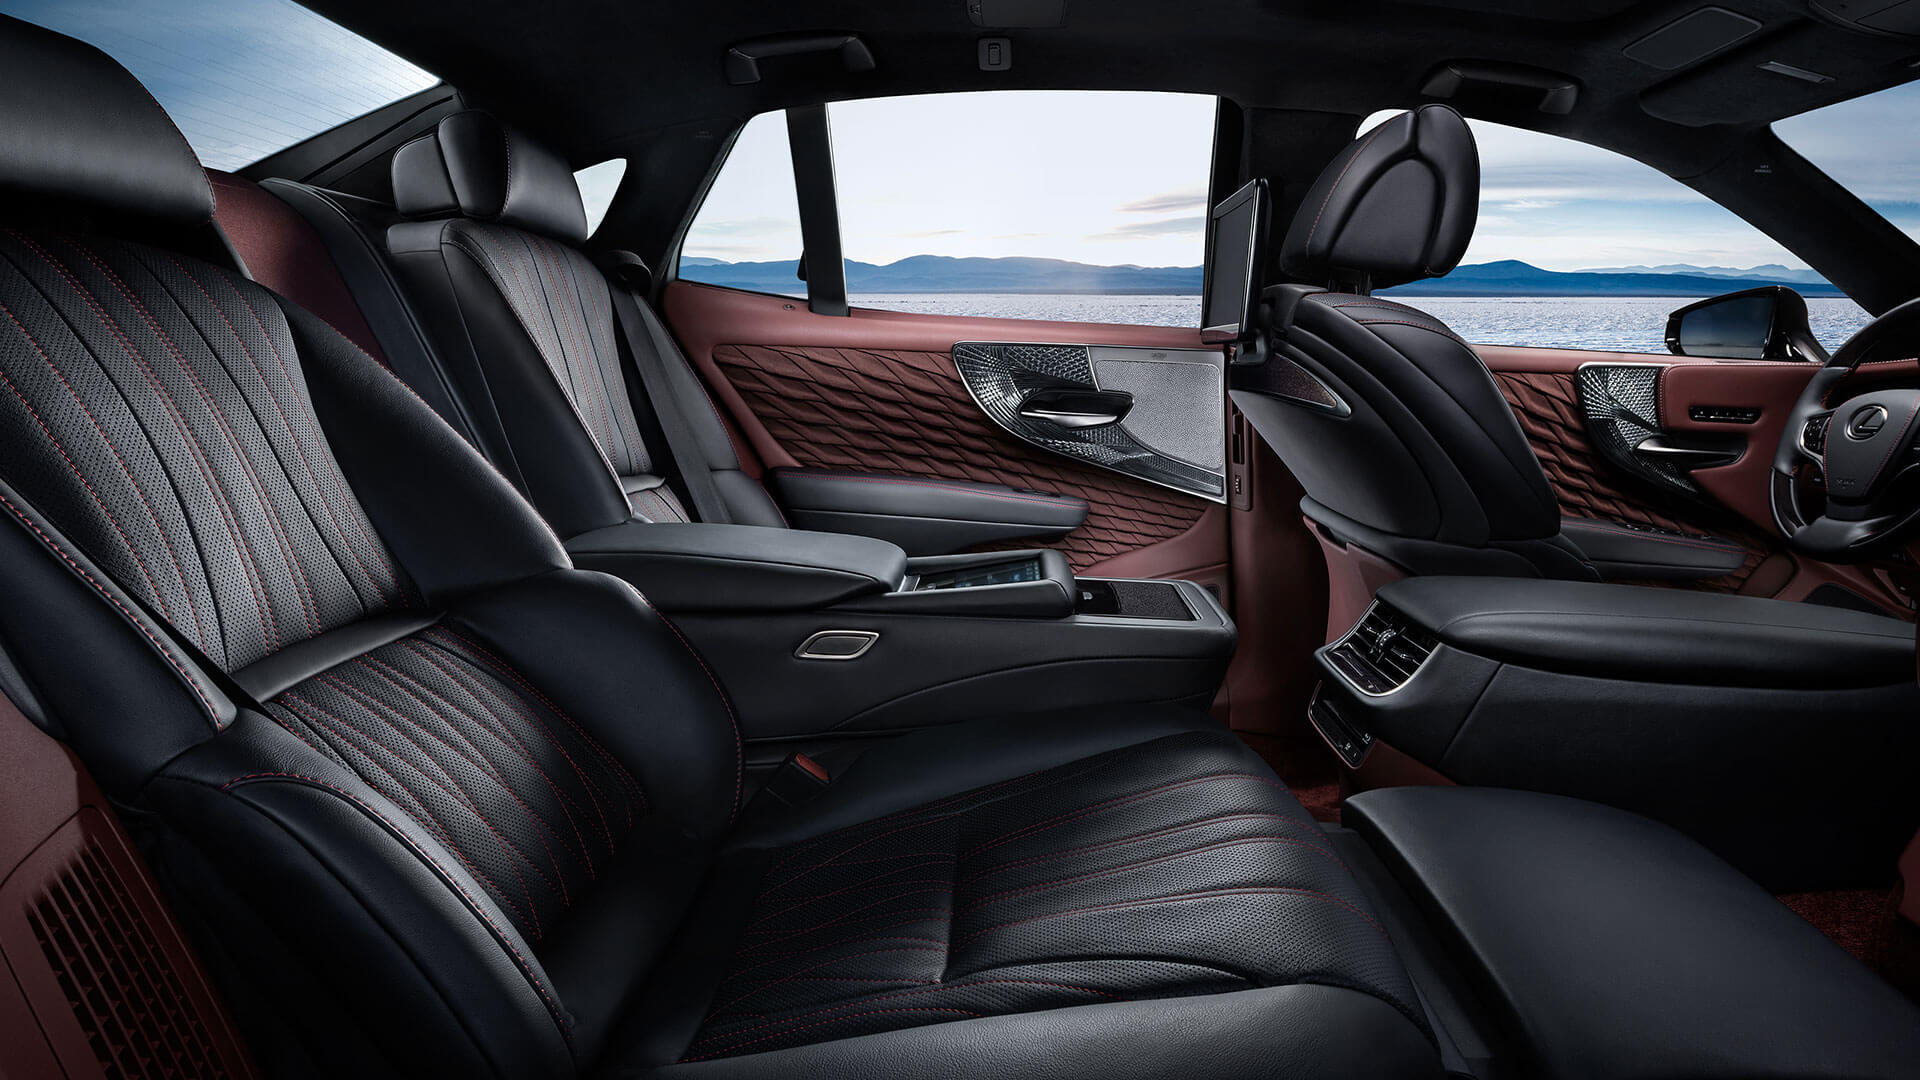 2018 lexus ls gallery 011 interior